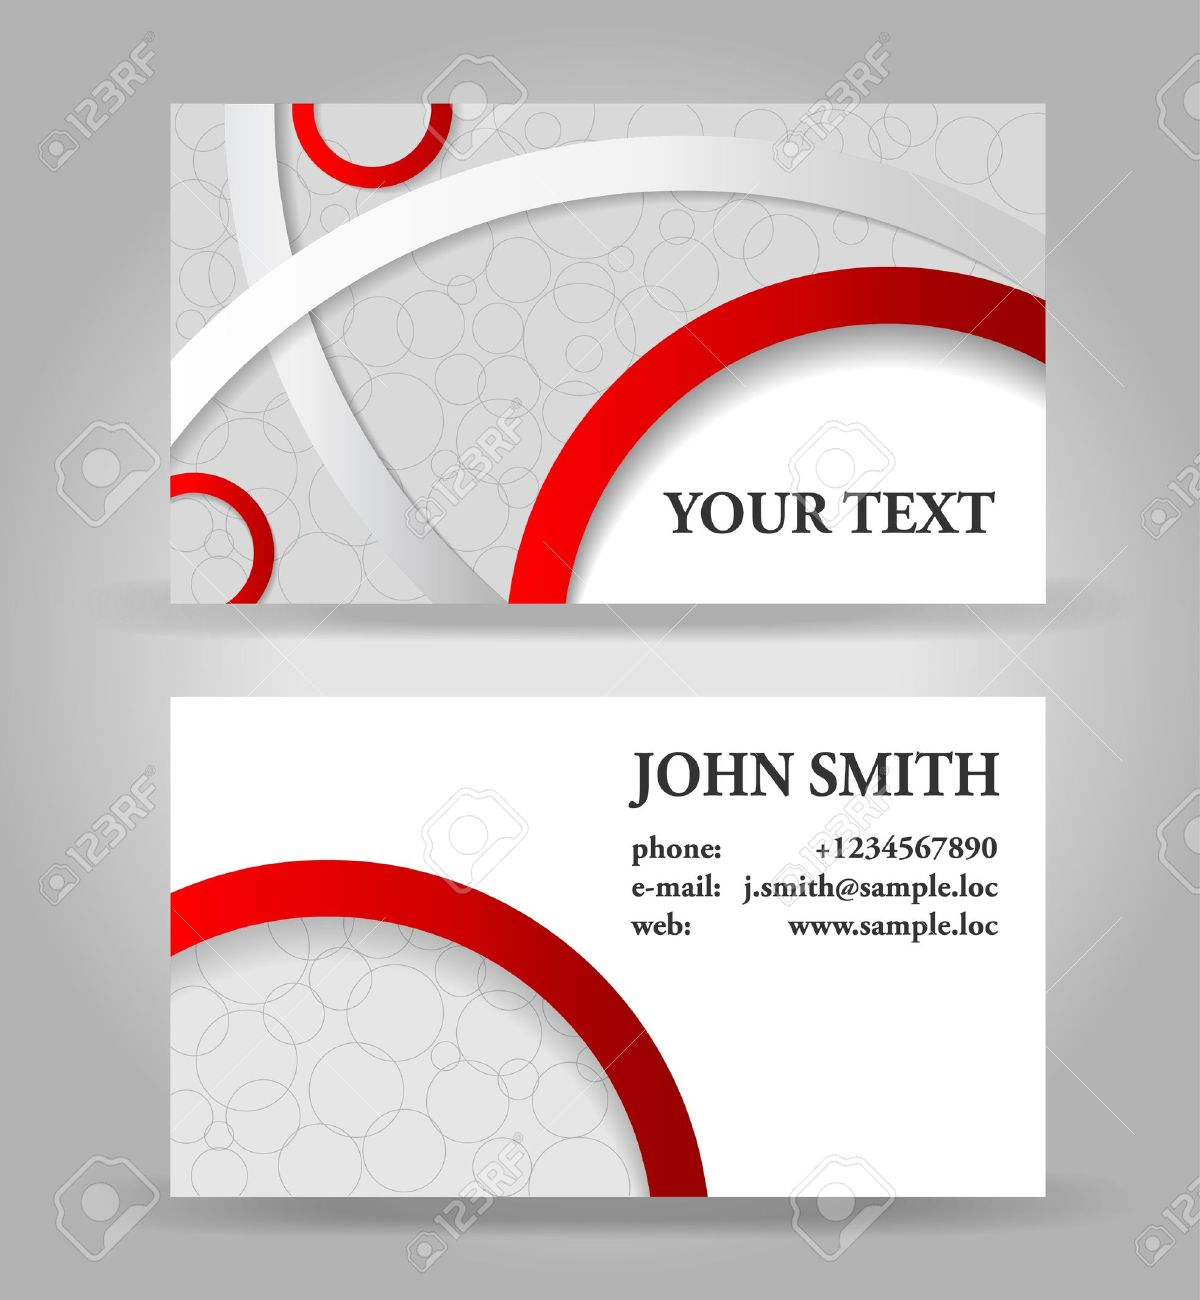 Visiting Cards Images Visiting Card Design Red And